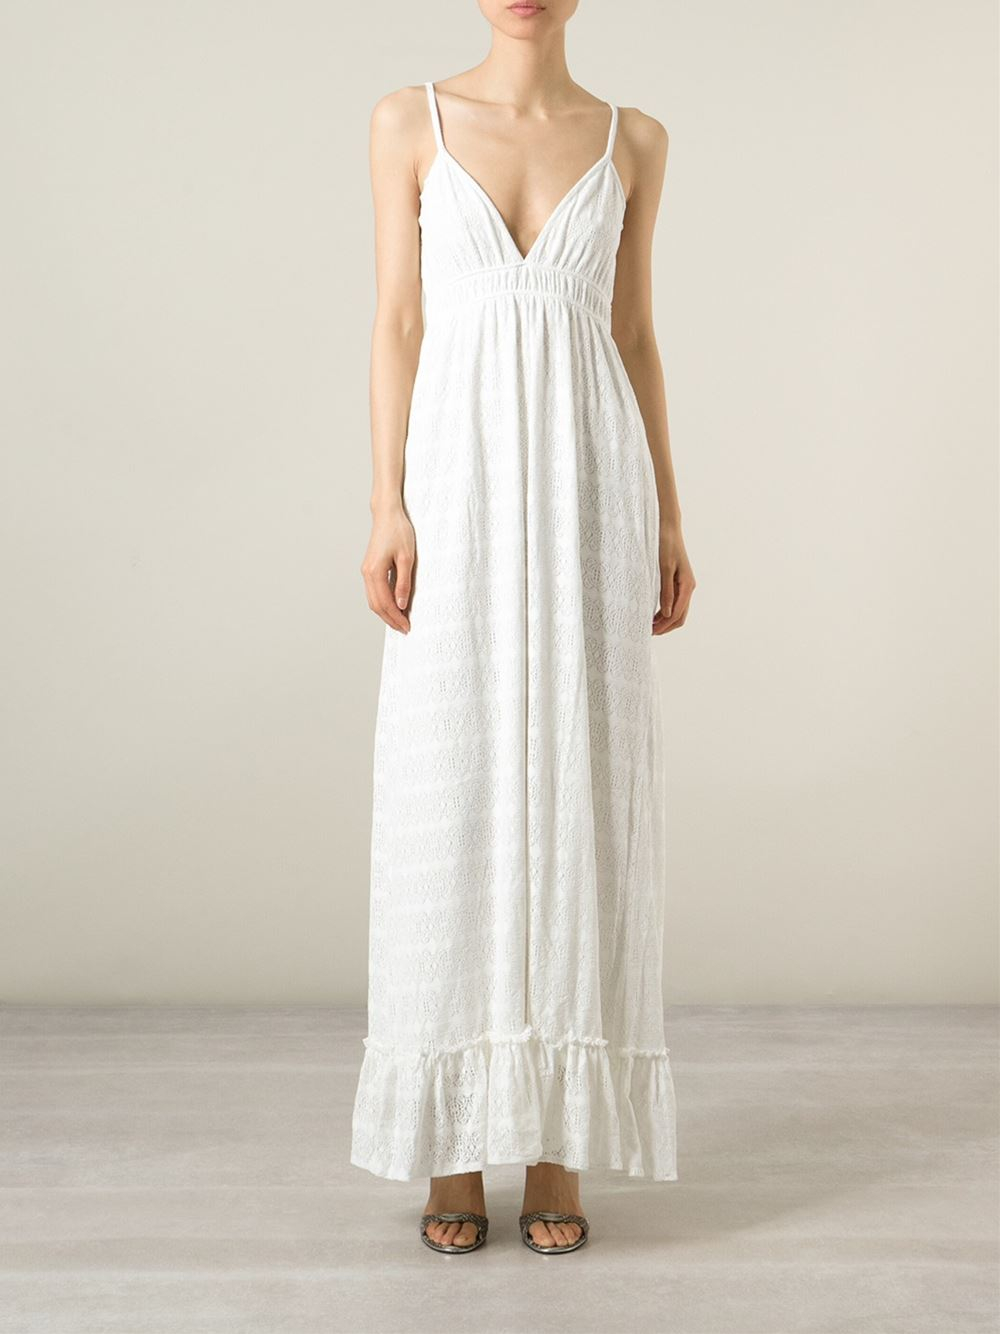 Melissa Odabash Woman Tara Fluted Crocheted Maxi Dress White Size S Melissa Odabash Manchester Online Outlet Limited Edition btN9w4a7Dp